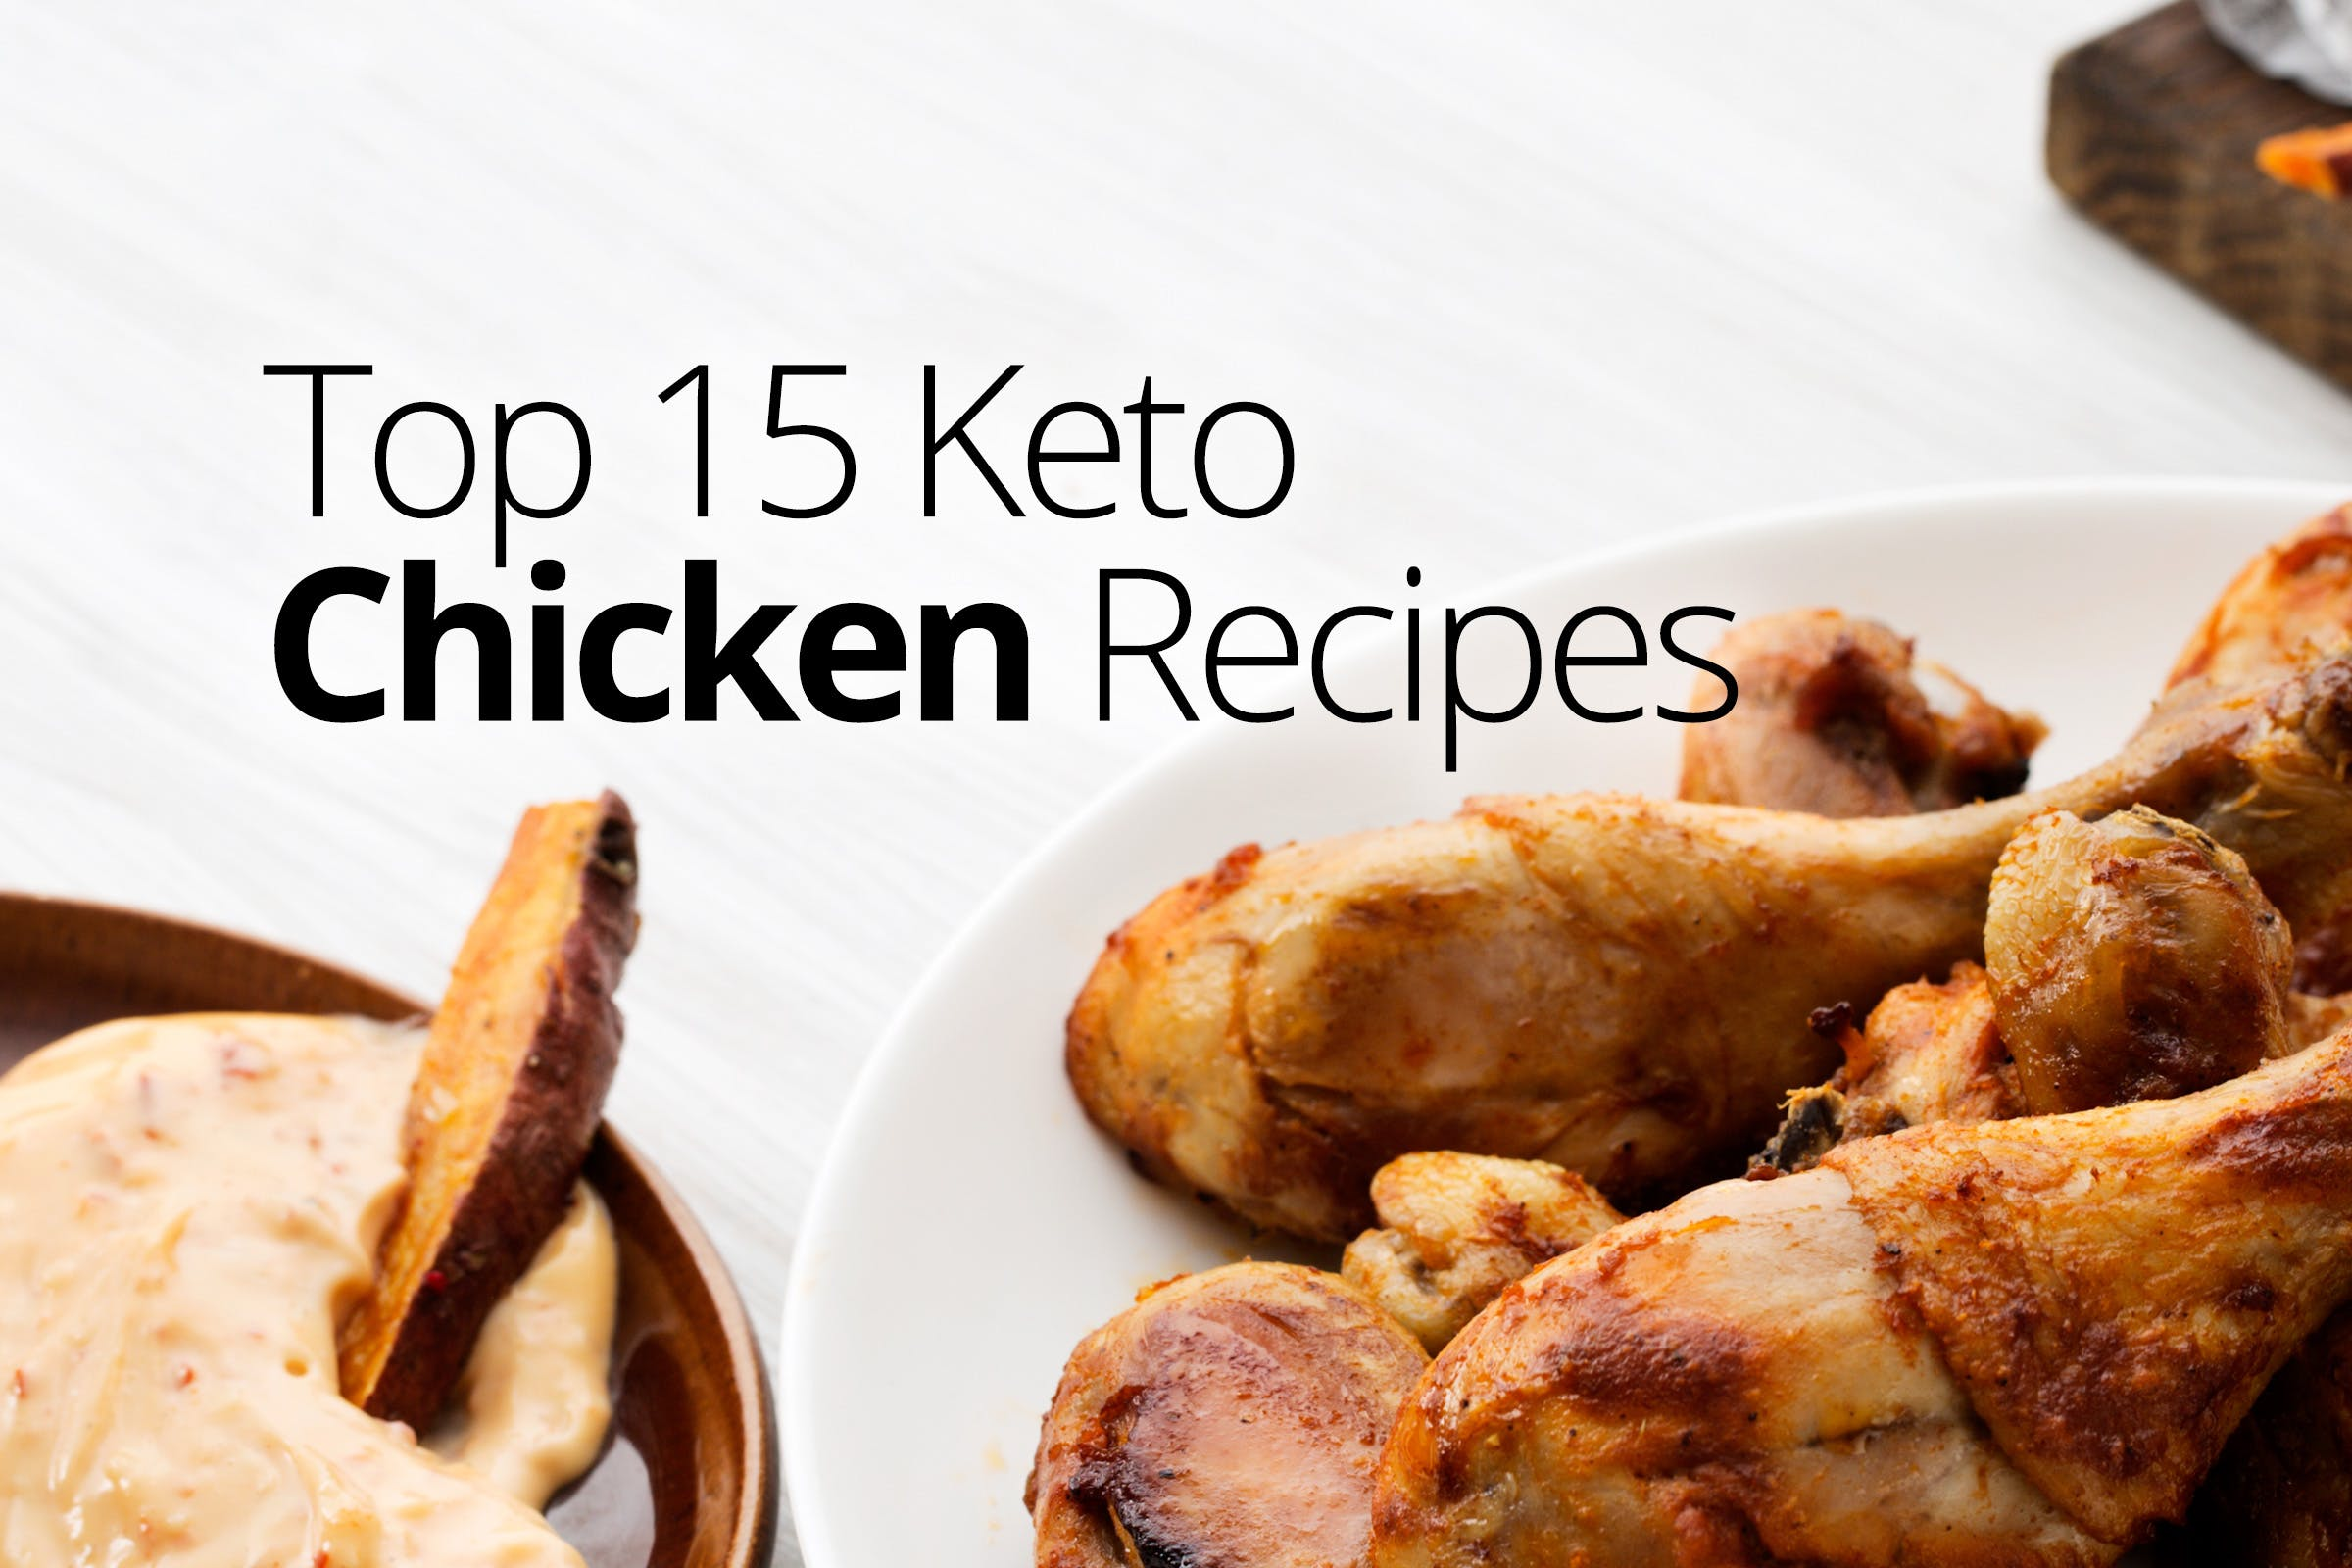 Top keto chicken recipes